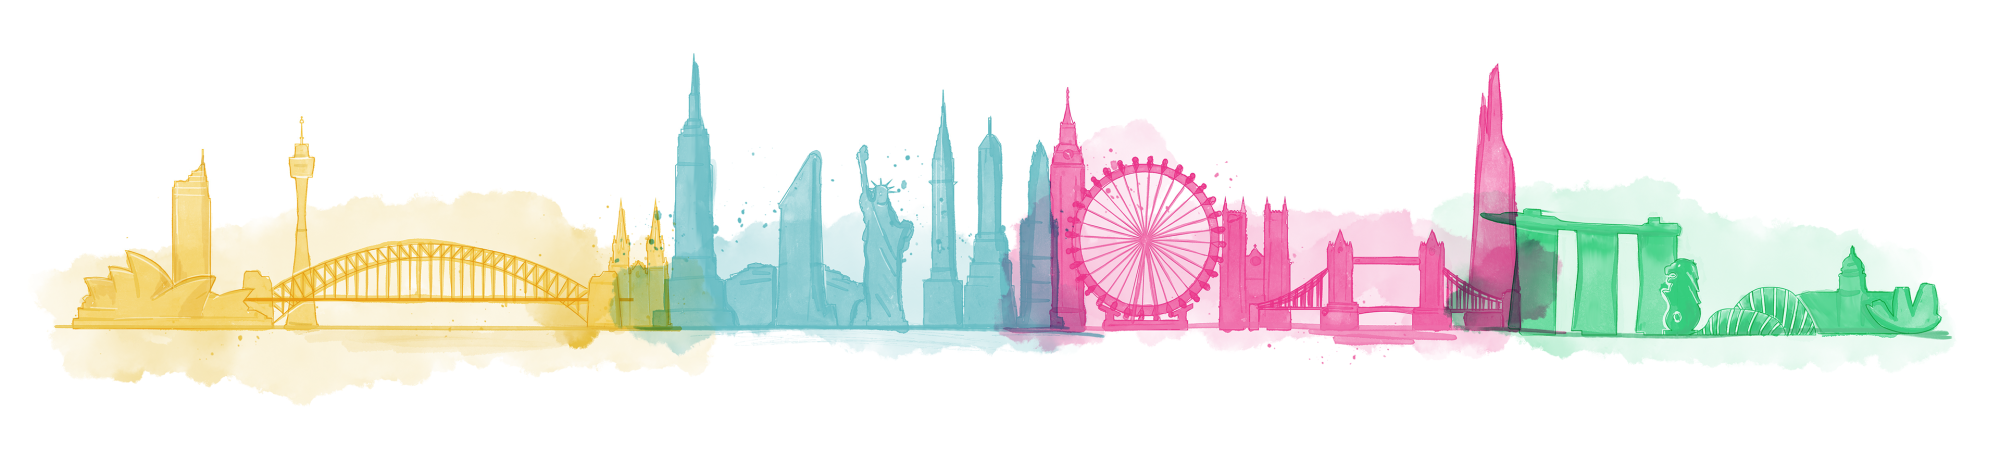 Composite image of skylines of different cities: Sydney, New York, London and Singapore.